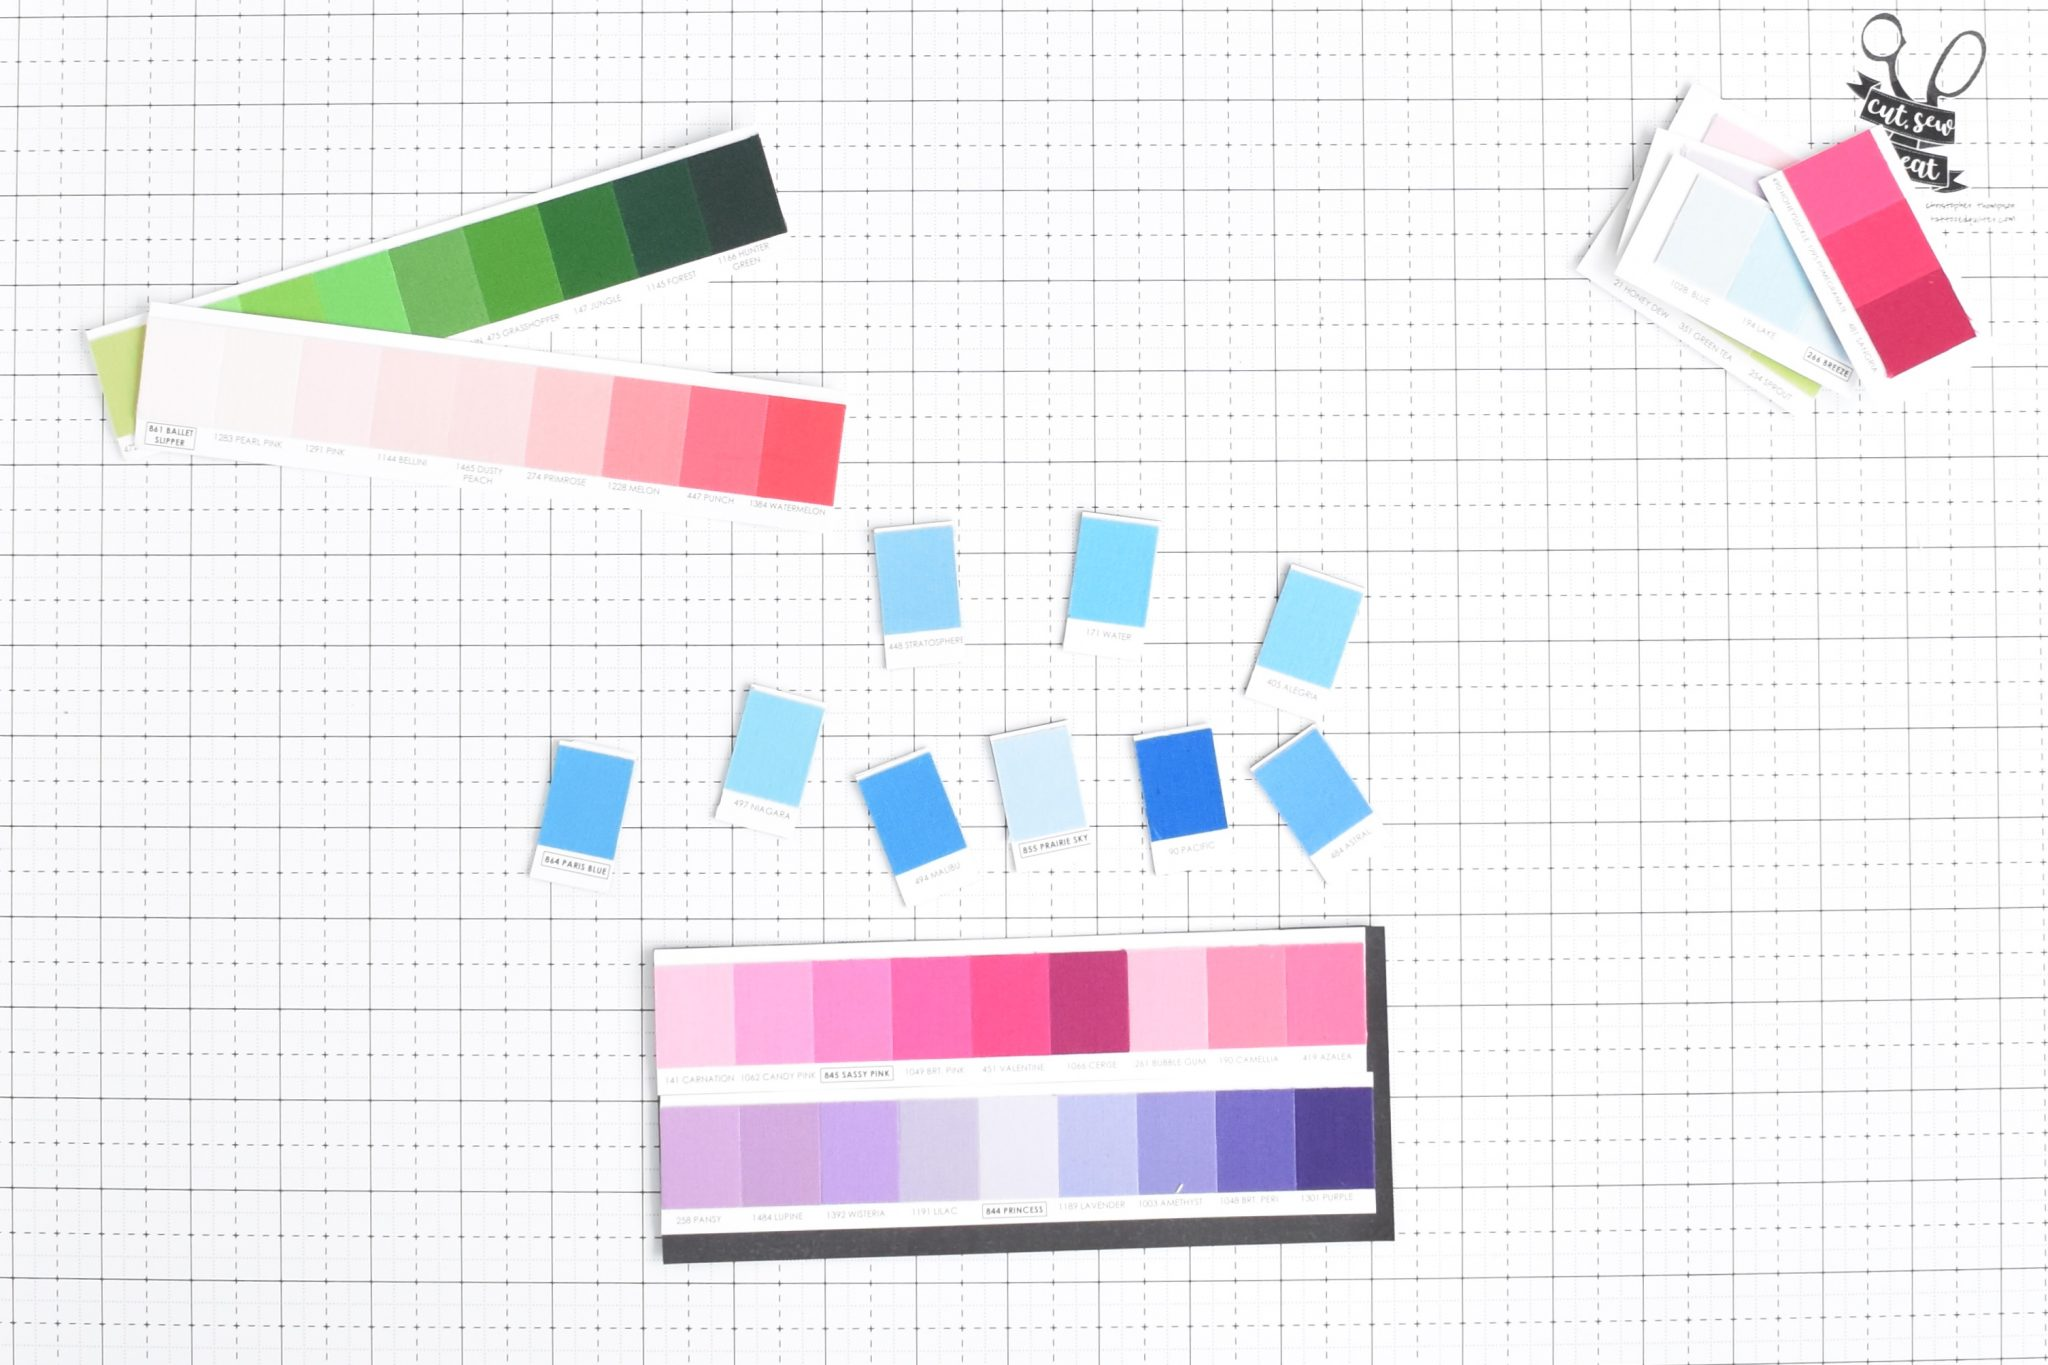 Adding magnets to the back of fabric swatches to make display and usability better